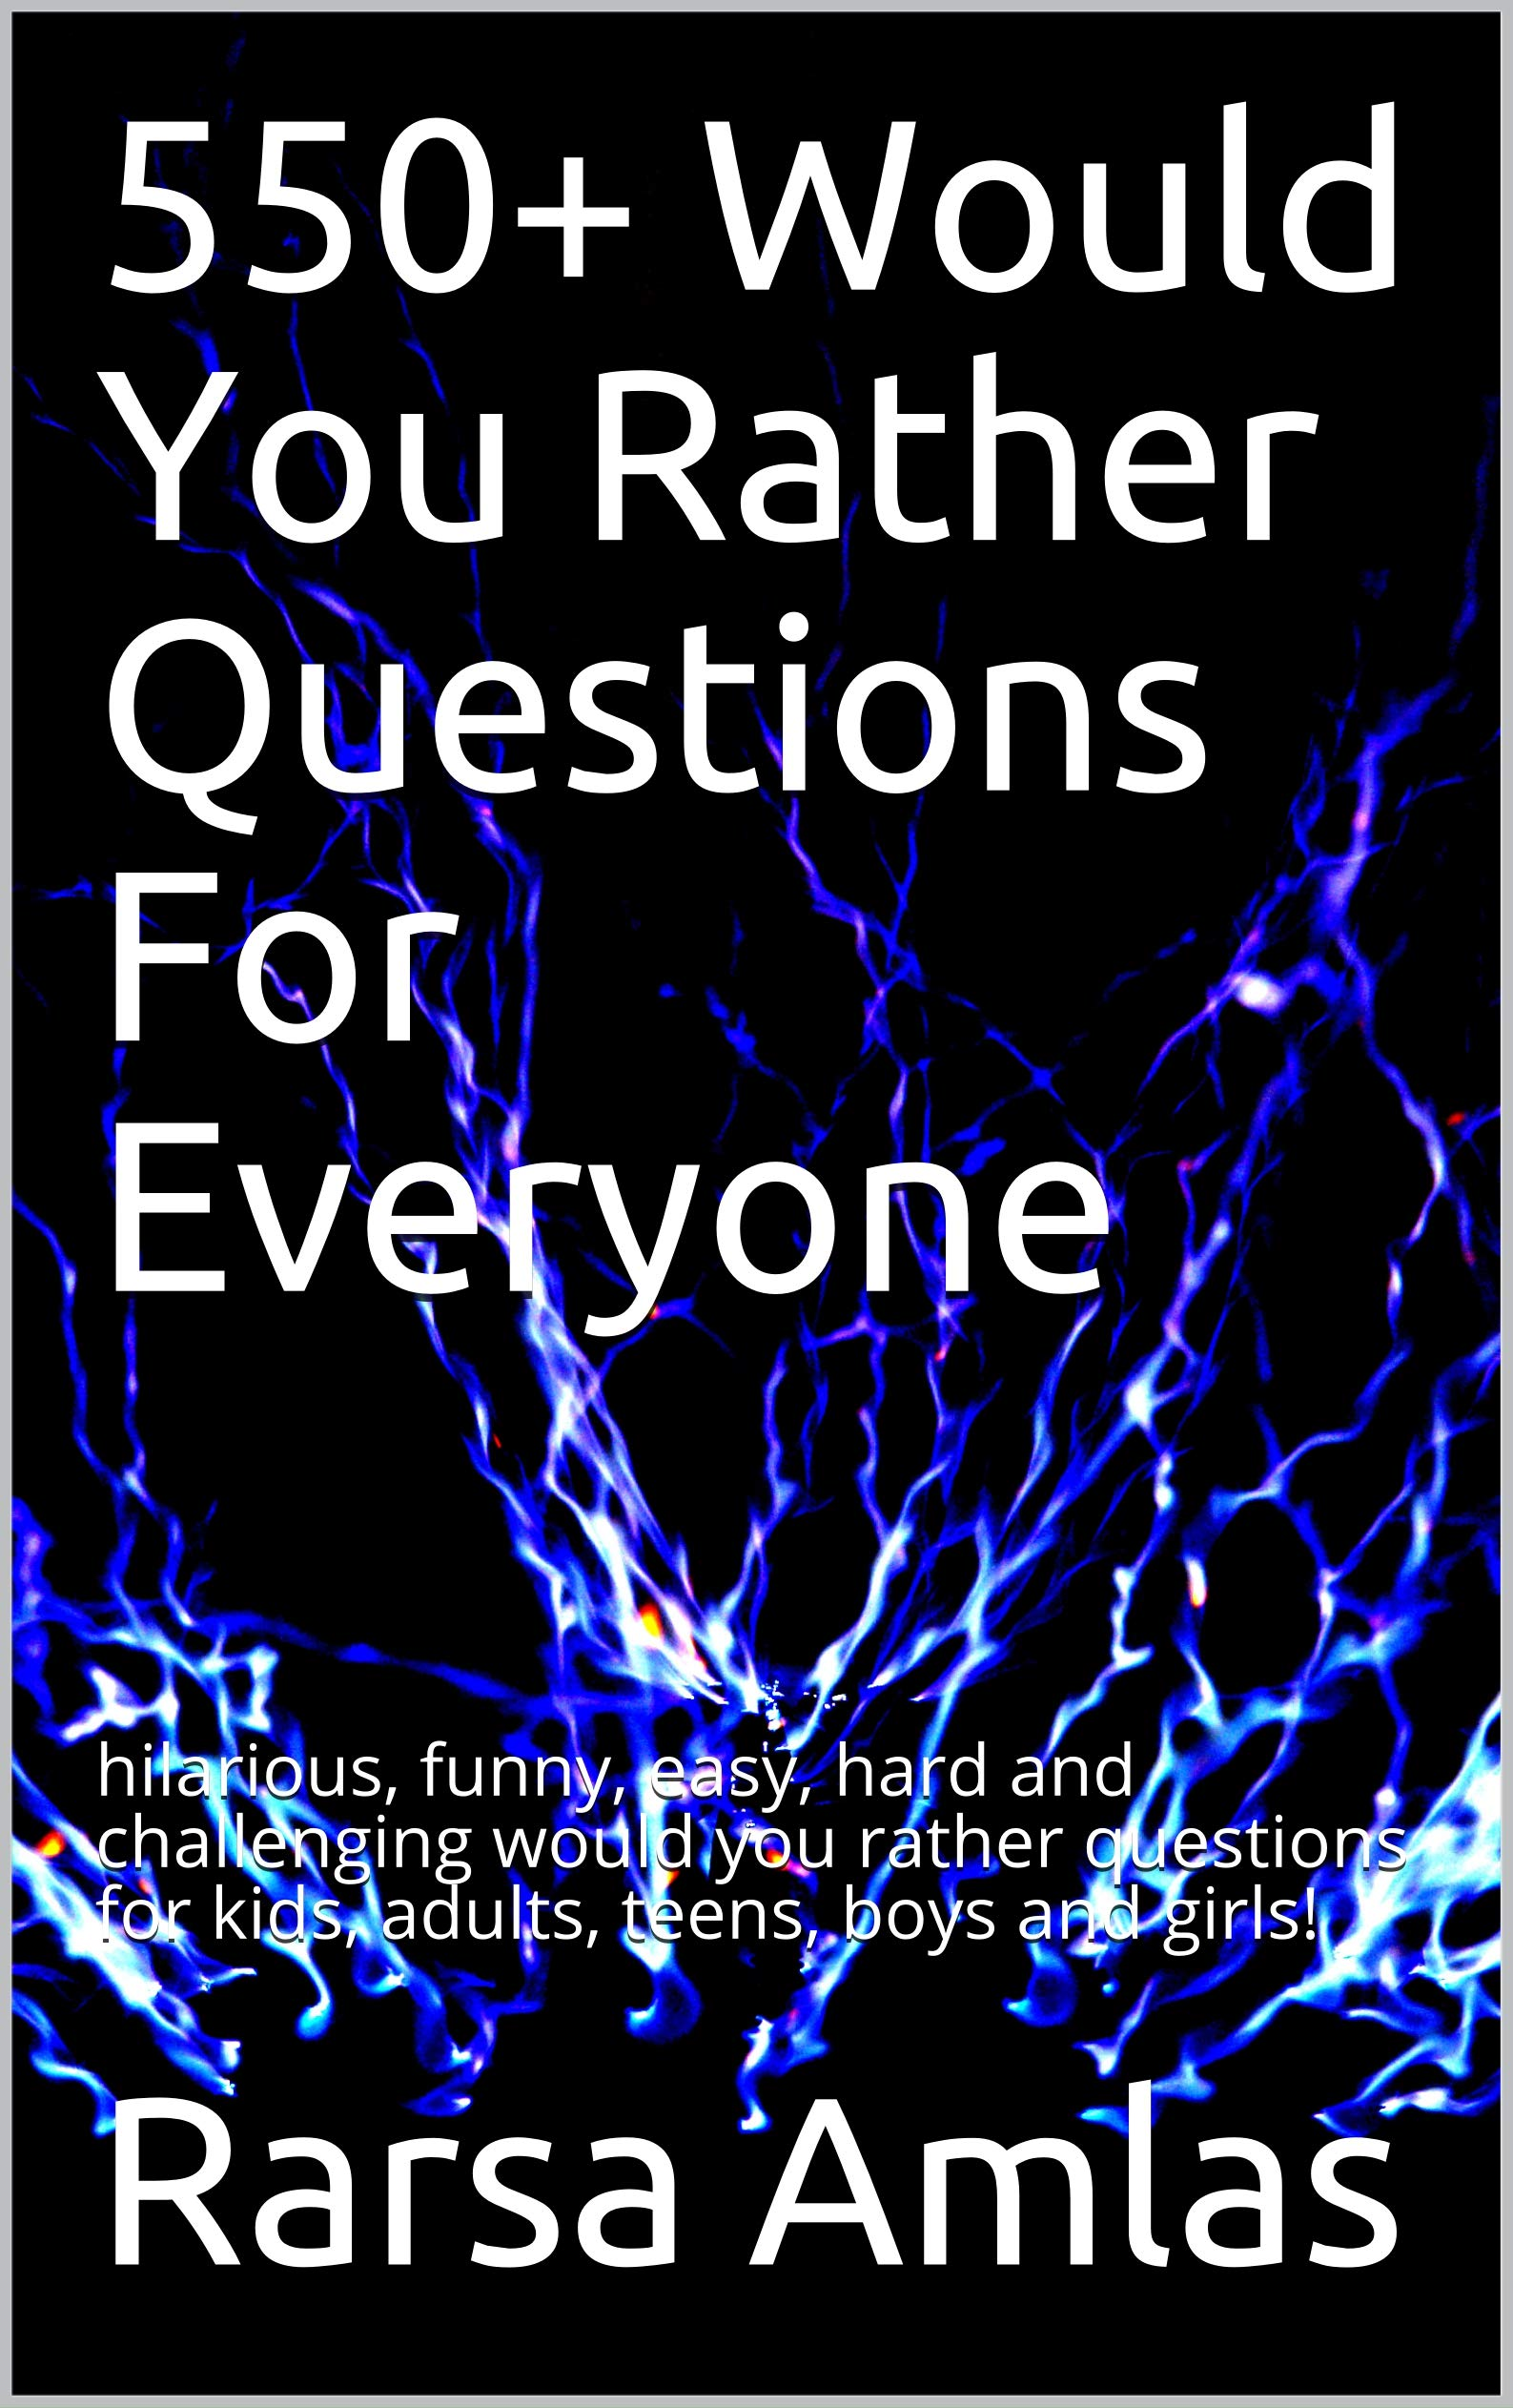 550+ Would You Rather Questions For Everyone : Funny, Easy, Hard and Challenging would you rather questions for kids, adults, teens, boys and girls!